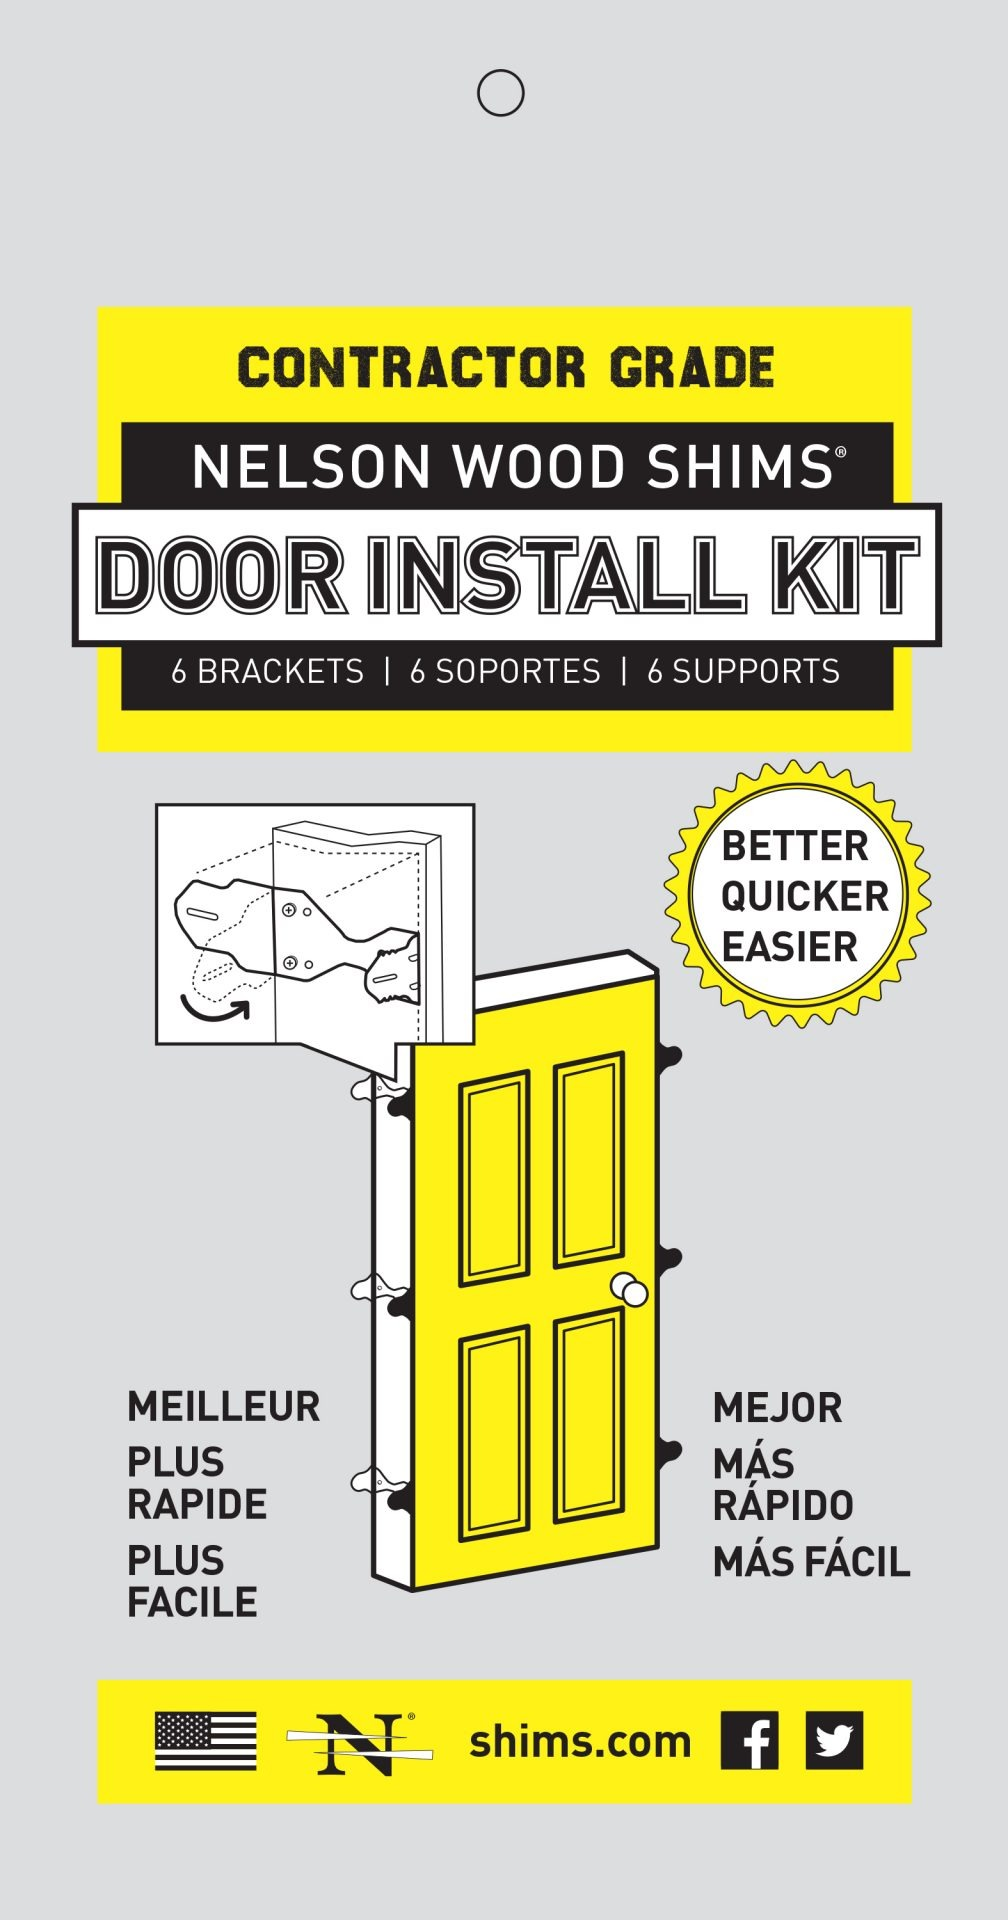 Door Install Kit packaging image